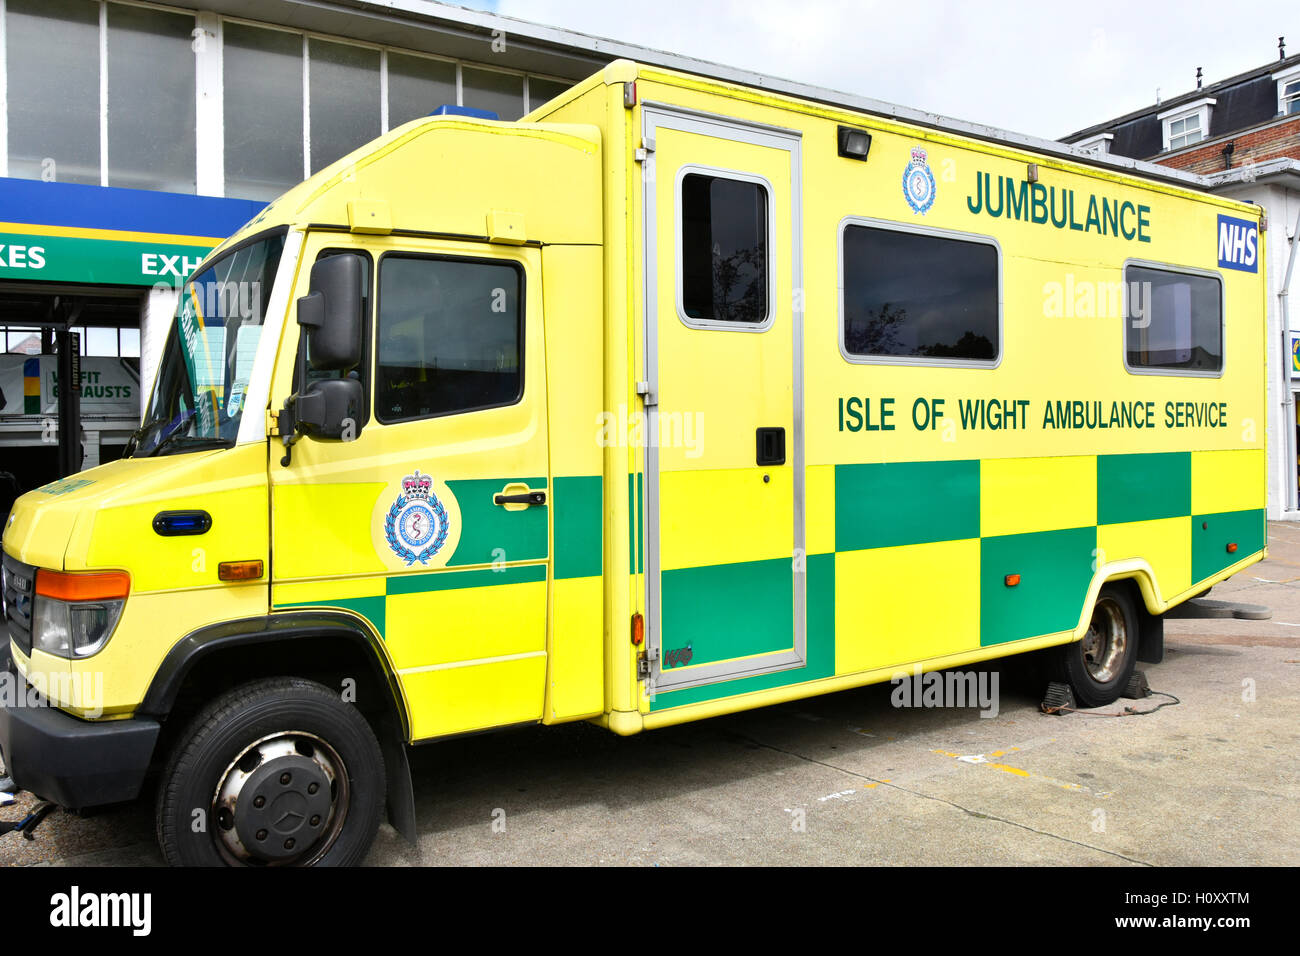 Newport Isle of Wight England UK unusual NHS emergency Ambulance Service Jumbulance parked at a garage having wheels - Stock Image